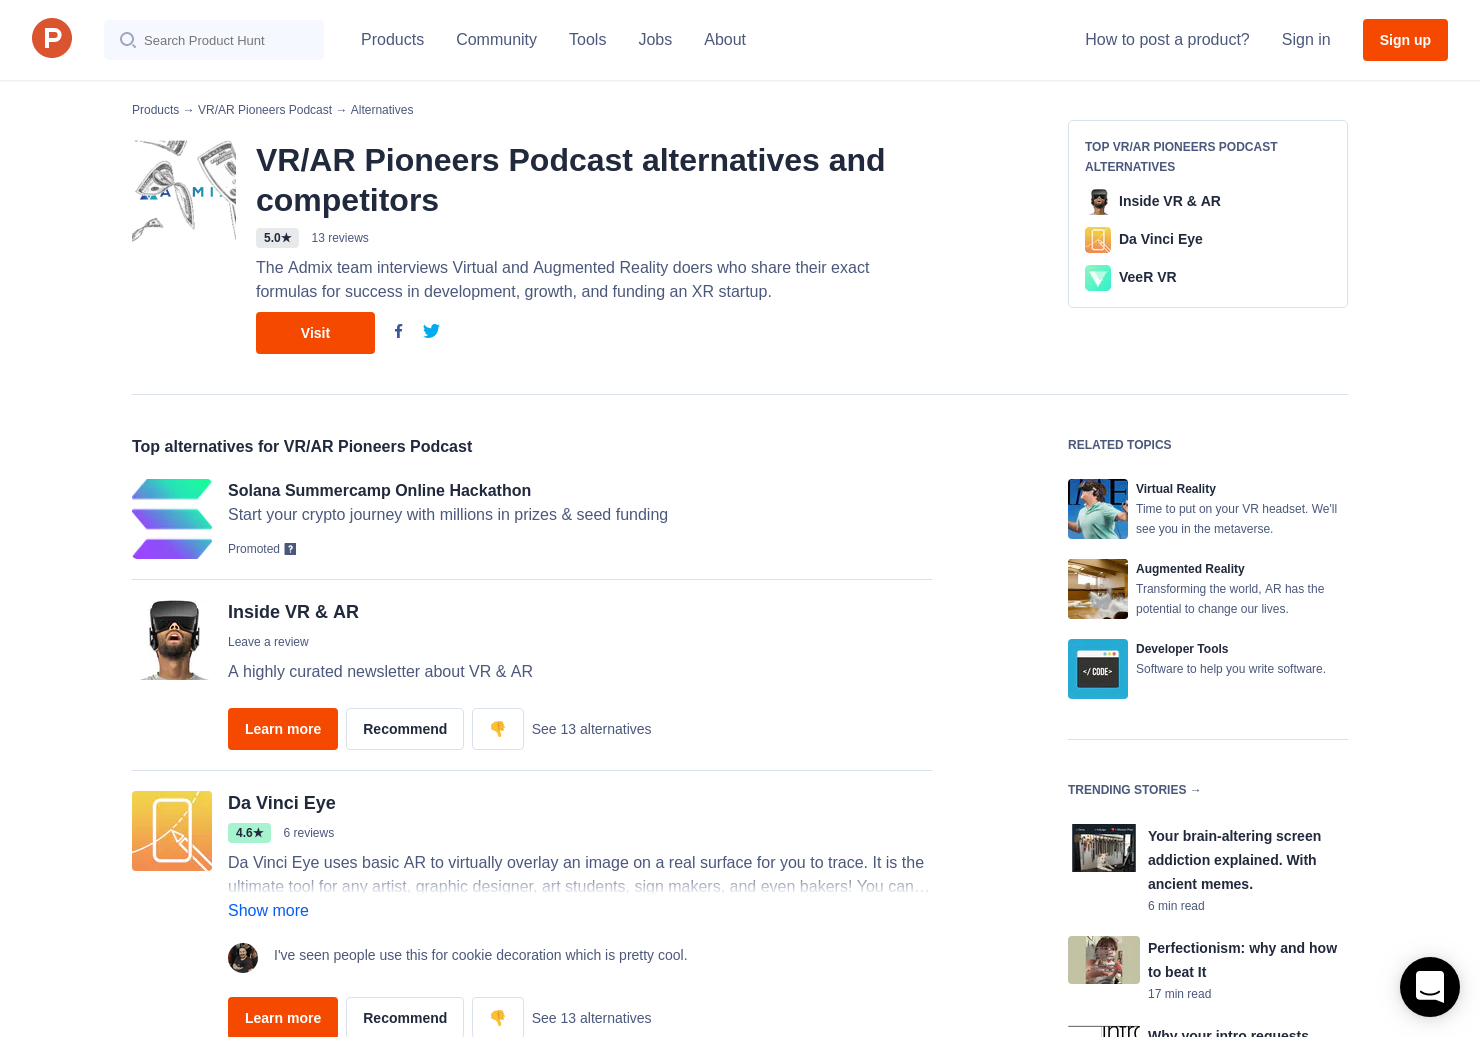 5 Alternatives to Admix in | Product Hunt